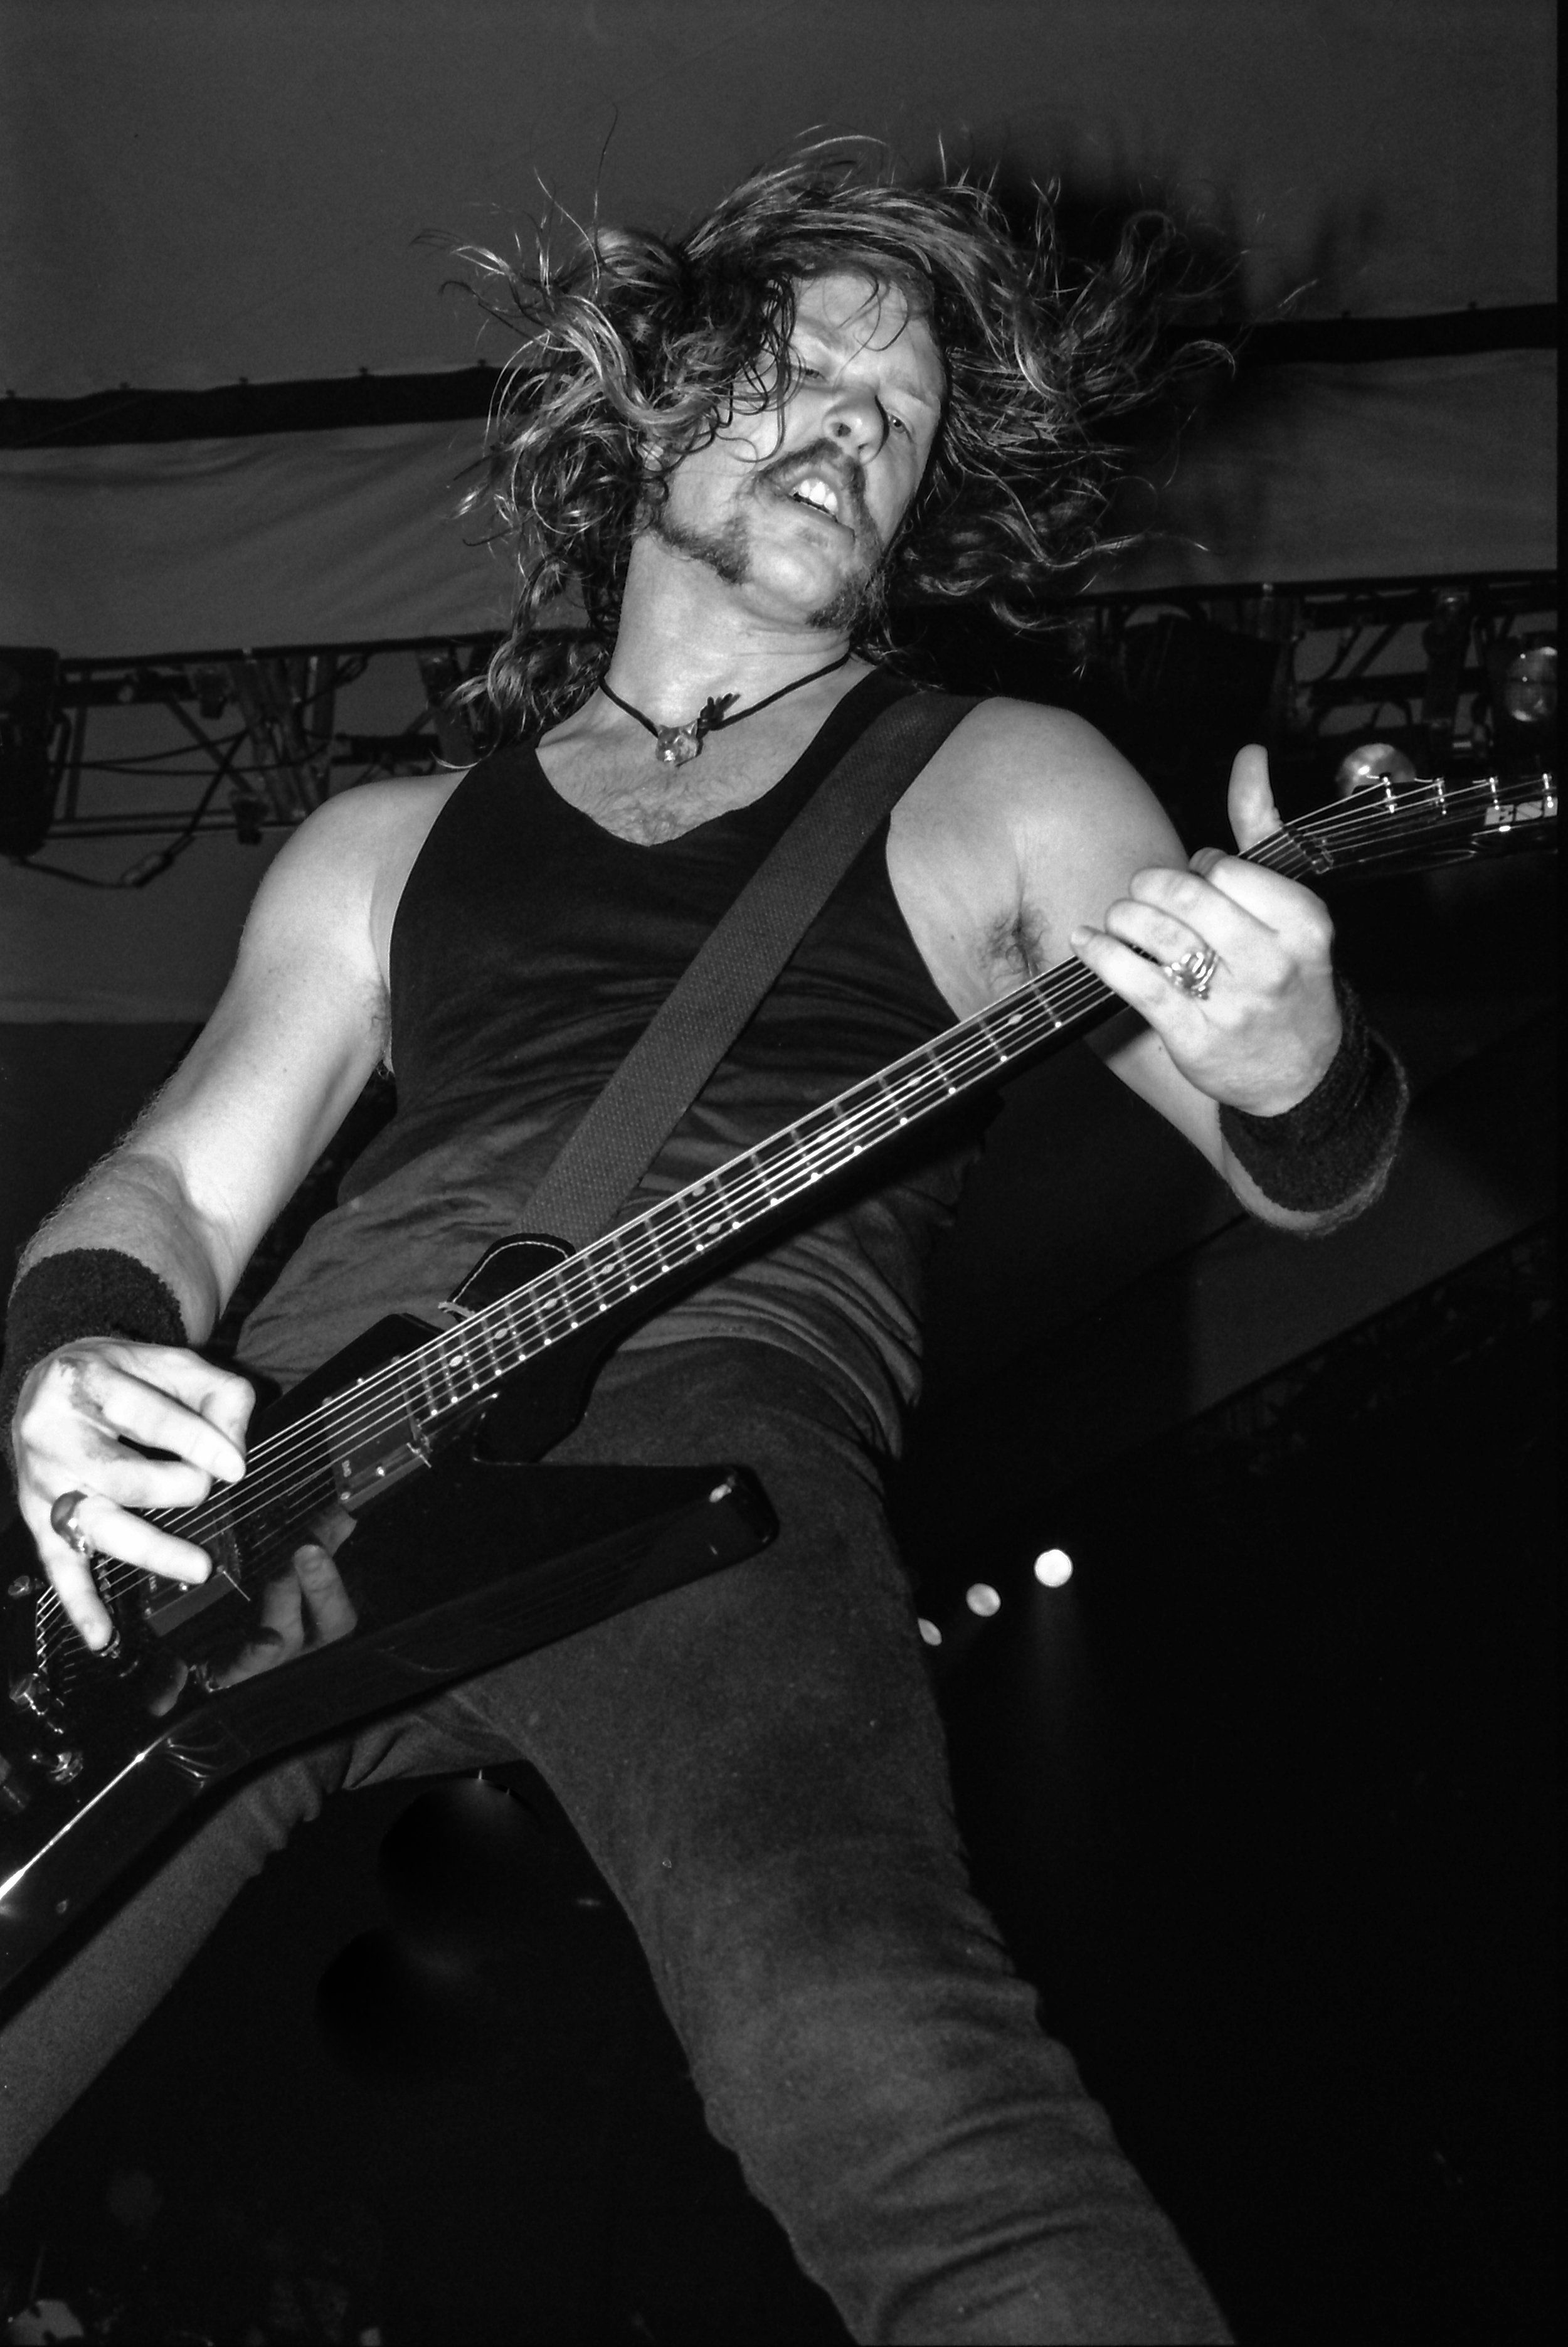 Tv Shows James Hetfield Aesthetic James Hetfield 2000s Gibson Explorer James Hetfield James Hetfield Ha James Hetfield Metallica Concert James Hetfield Young